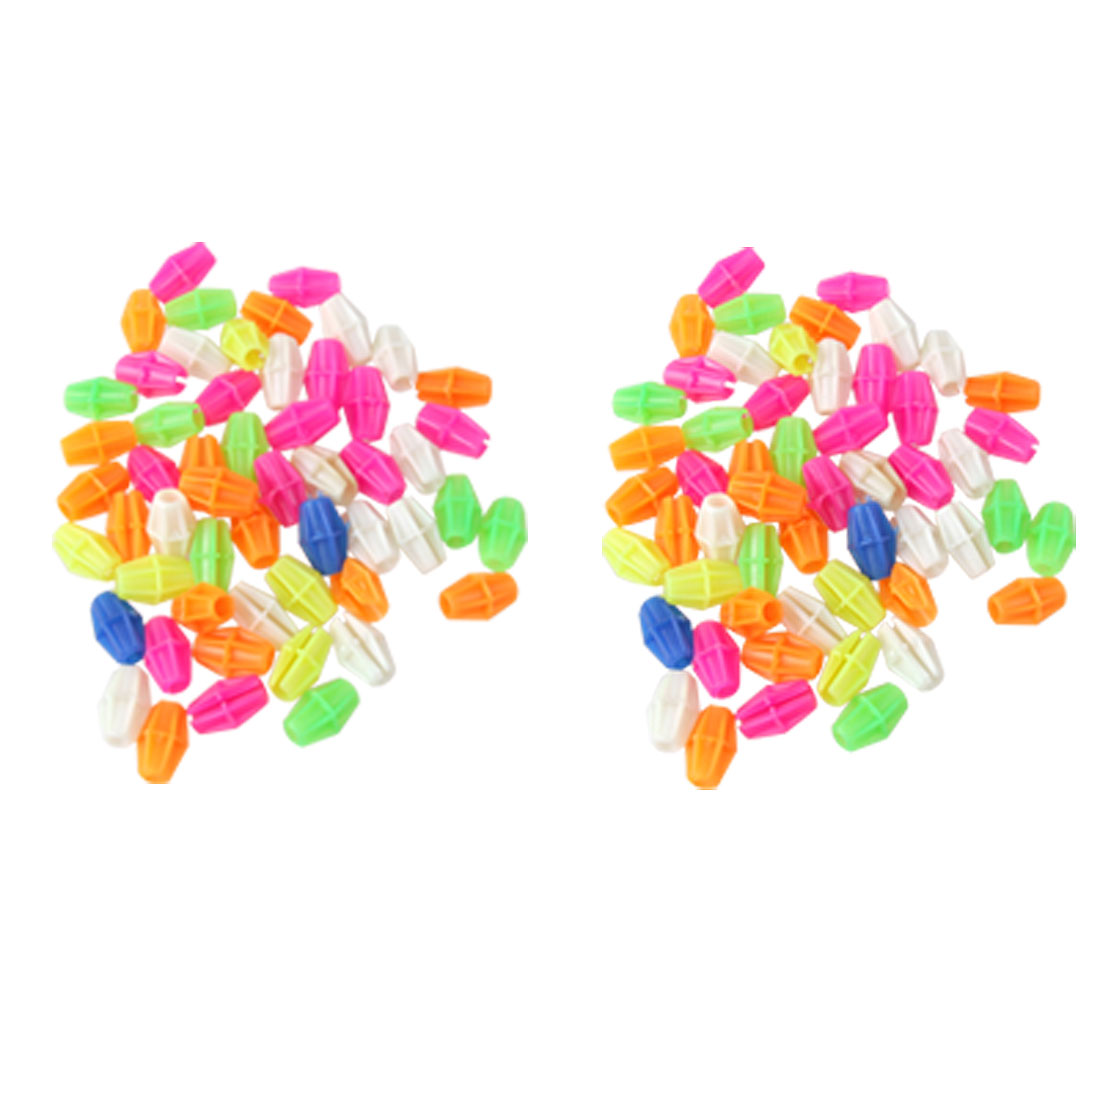 2 Pcs Colorful Plastic Clip Spoke Bead Bicycle Decor